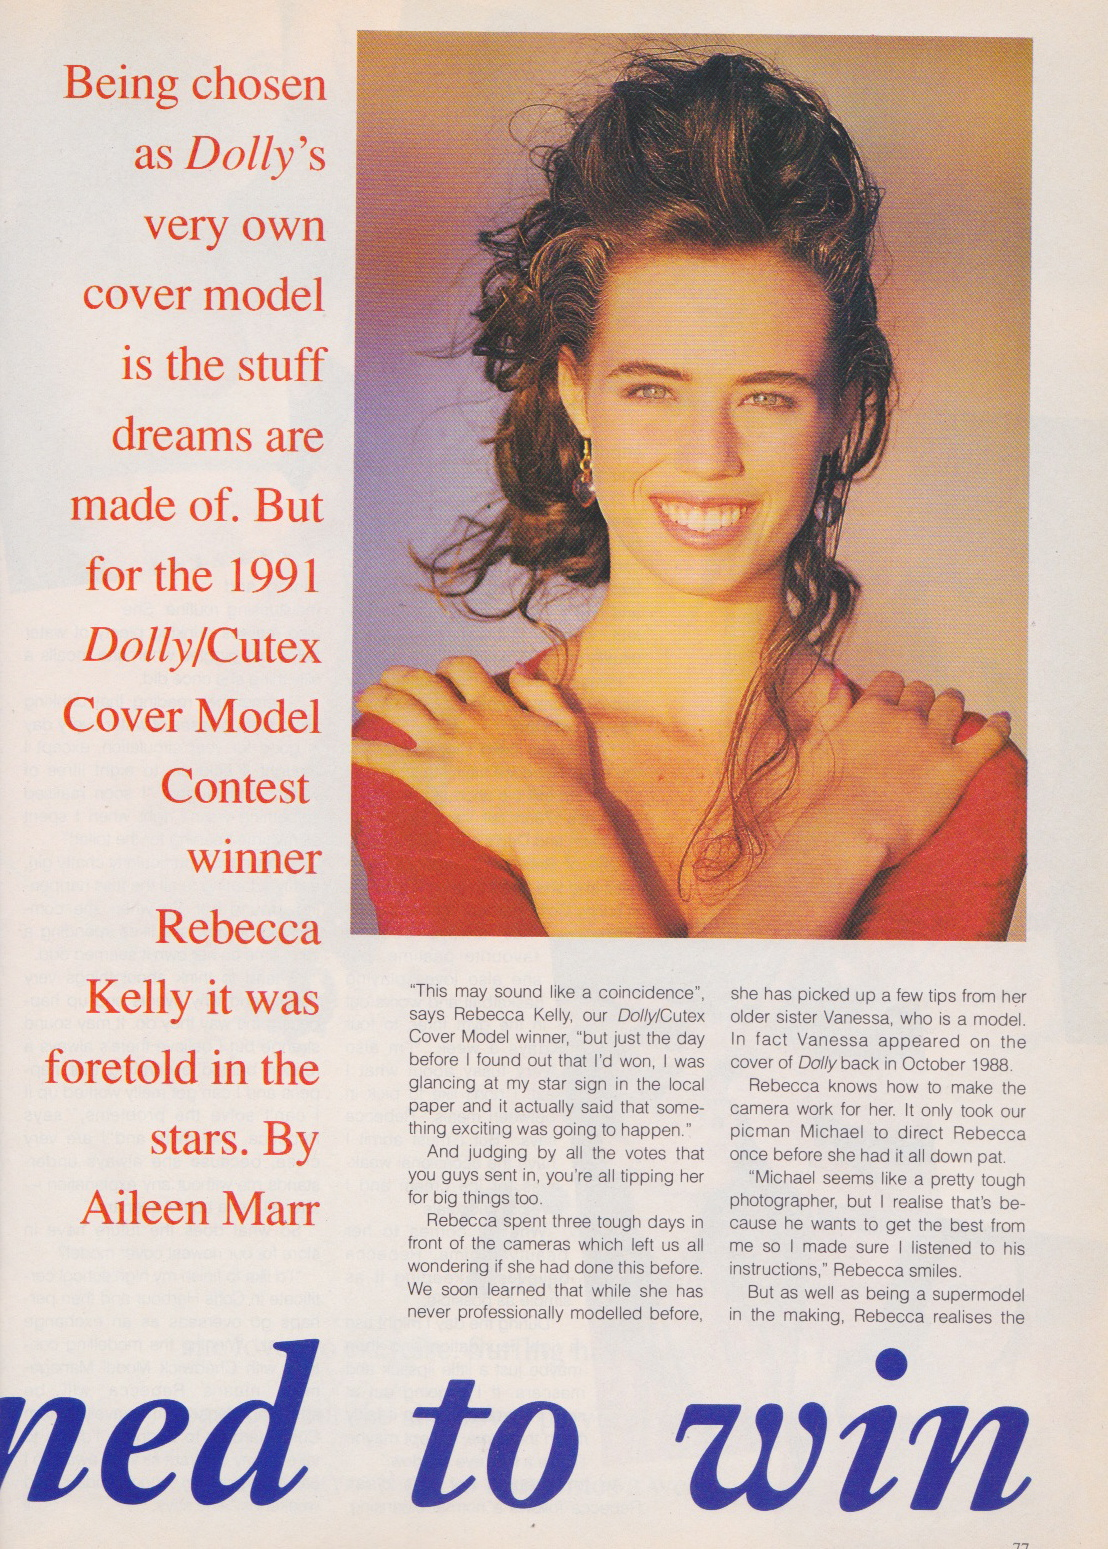 Dolly Covergirl Competition | 1991 Winner Rebecca Kelly 02.jpeg